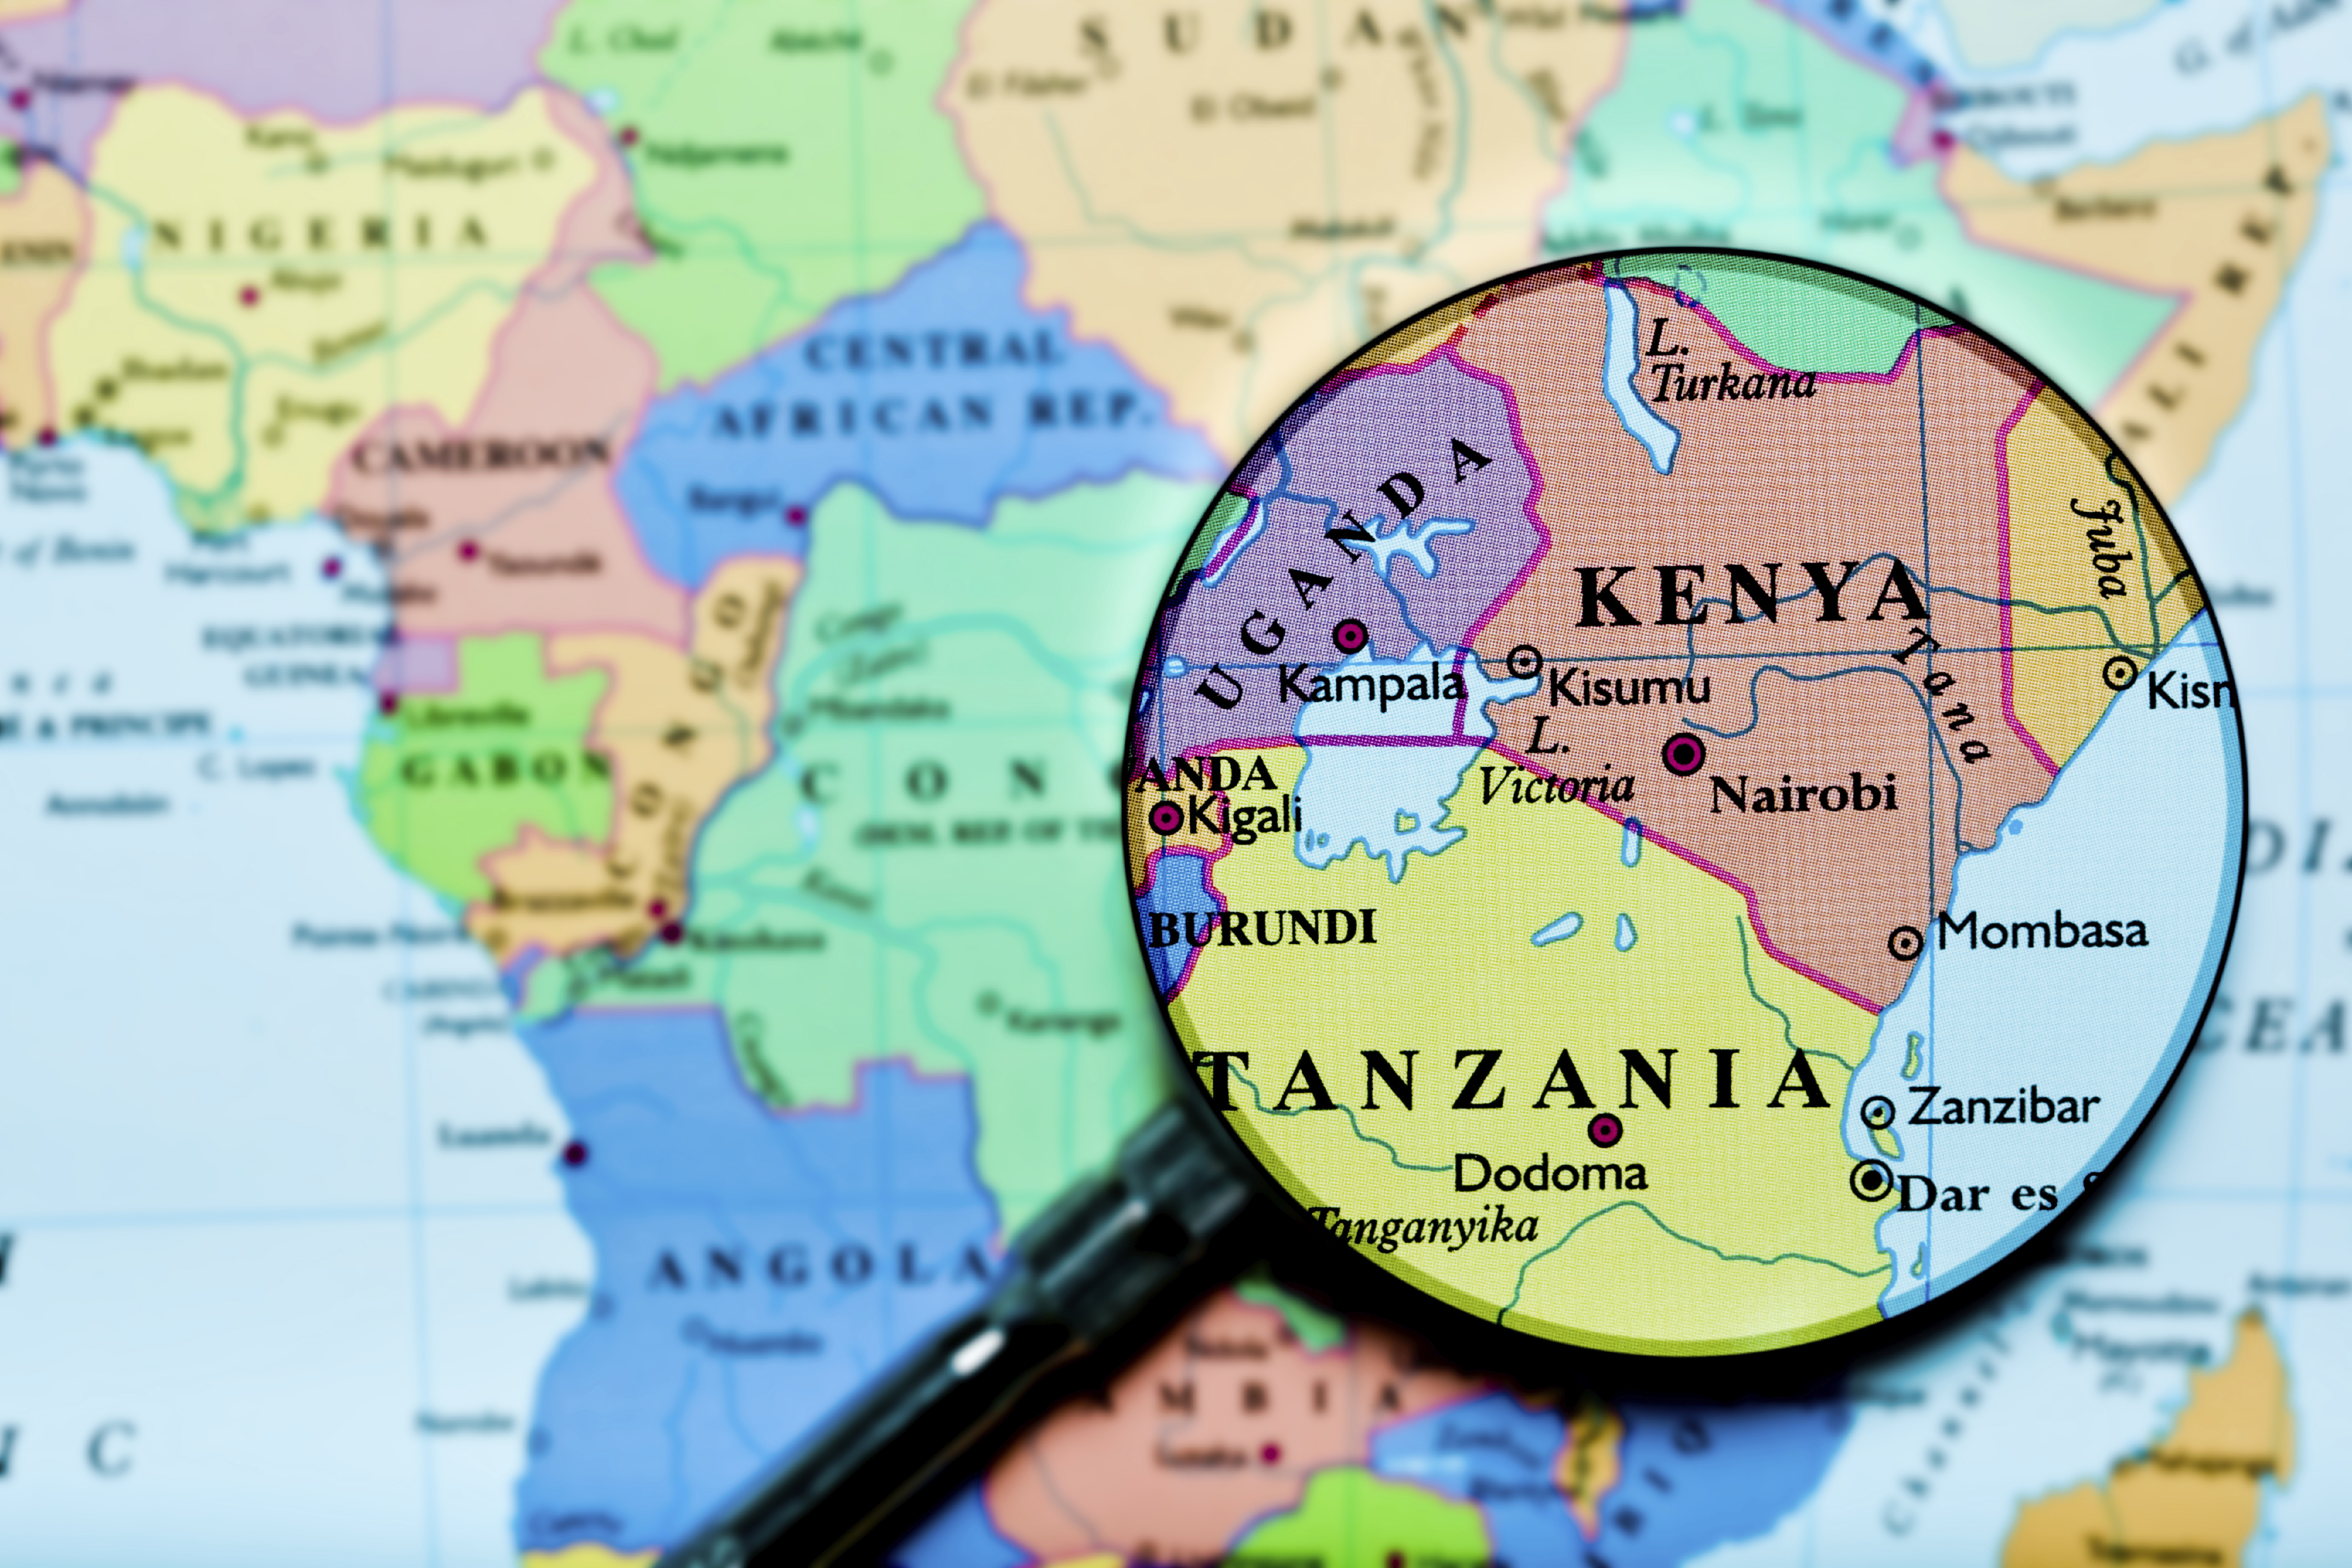 Tanzania On Africa Map.Kenya Tanzania Africa Uganda Map Global Trade Review Gtr